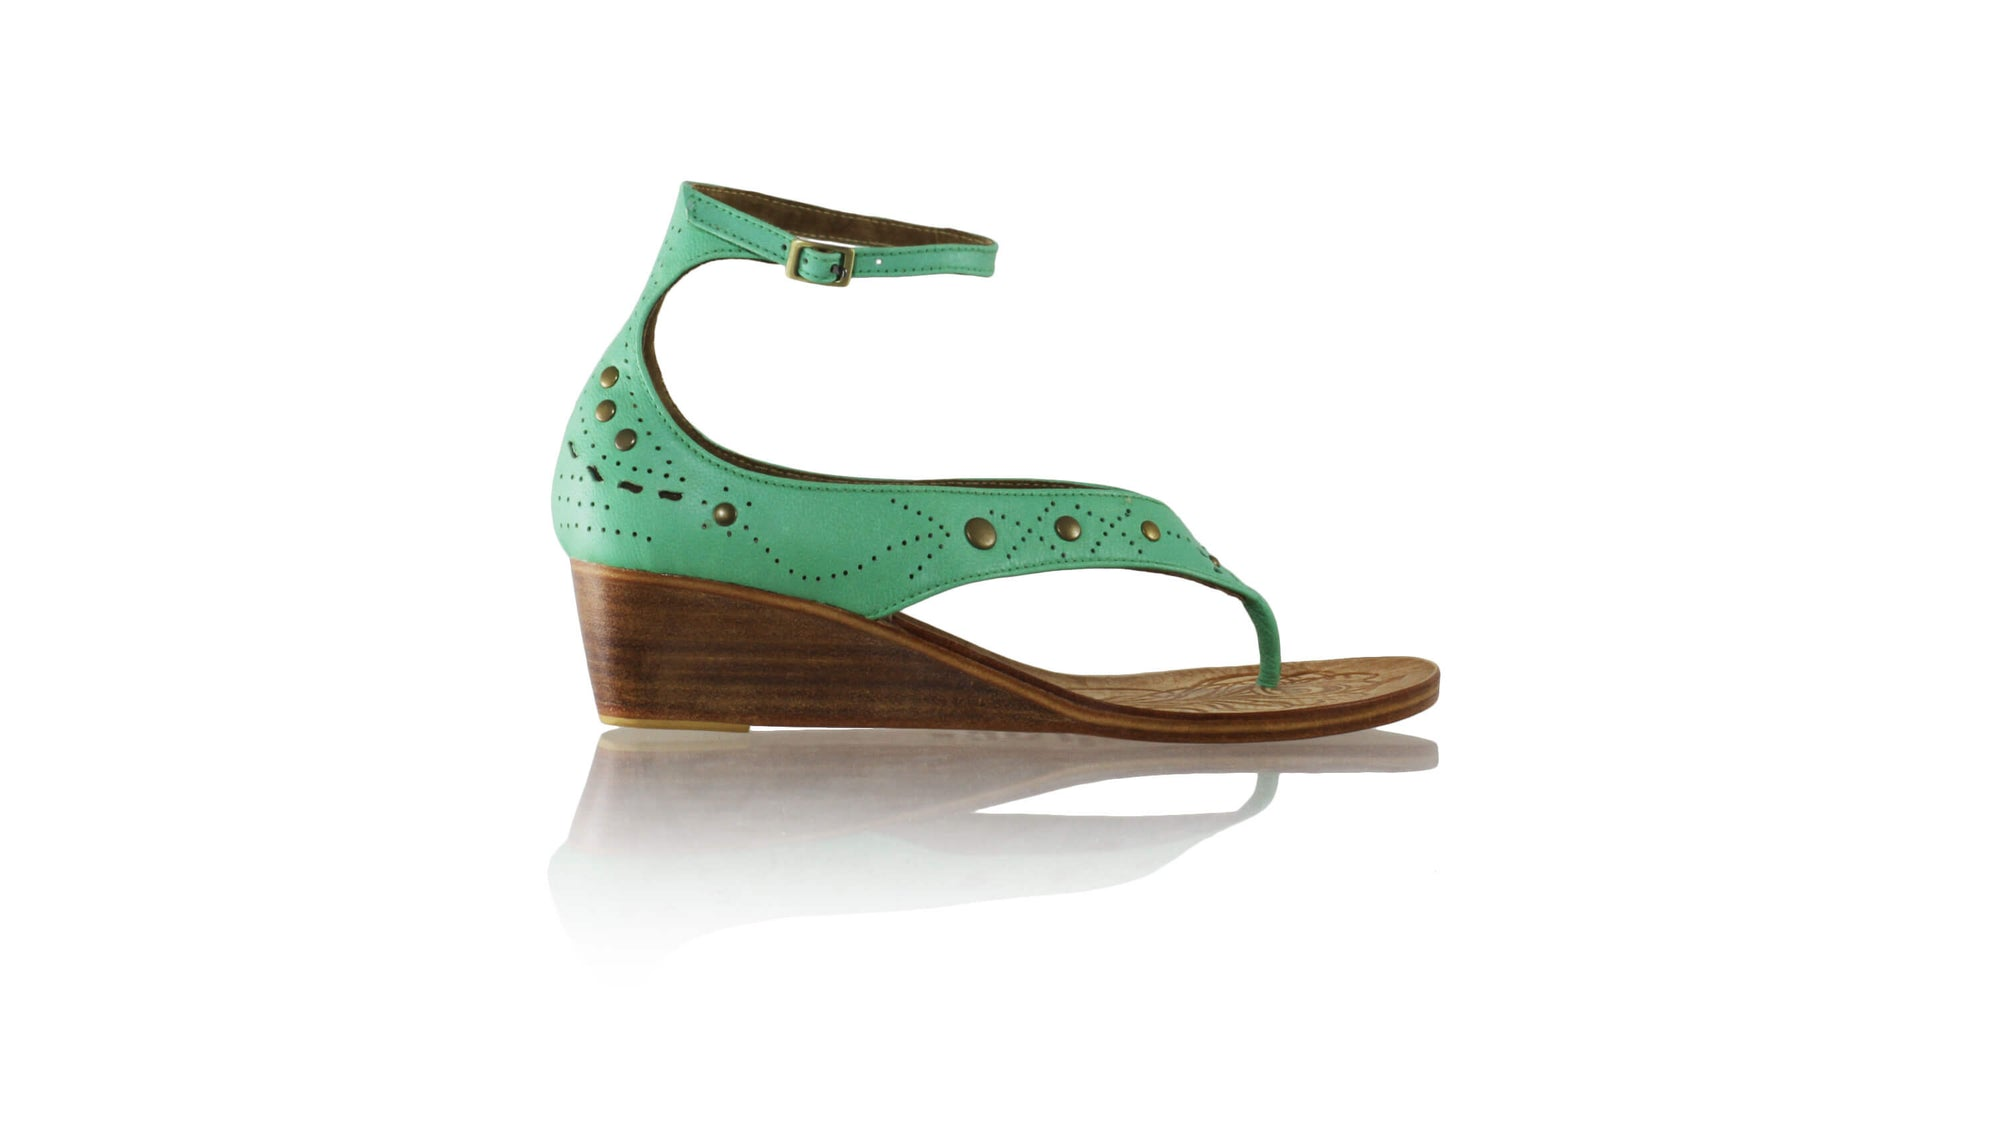 Leather-shoes-Miranda 35mm Wedge - Aqua-sandals wedges-NILUH DJELANTIK-NILUH DJELANTIK